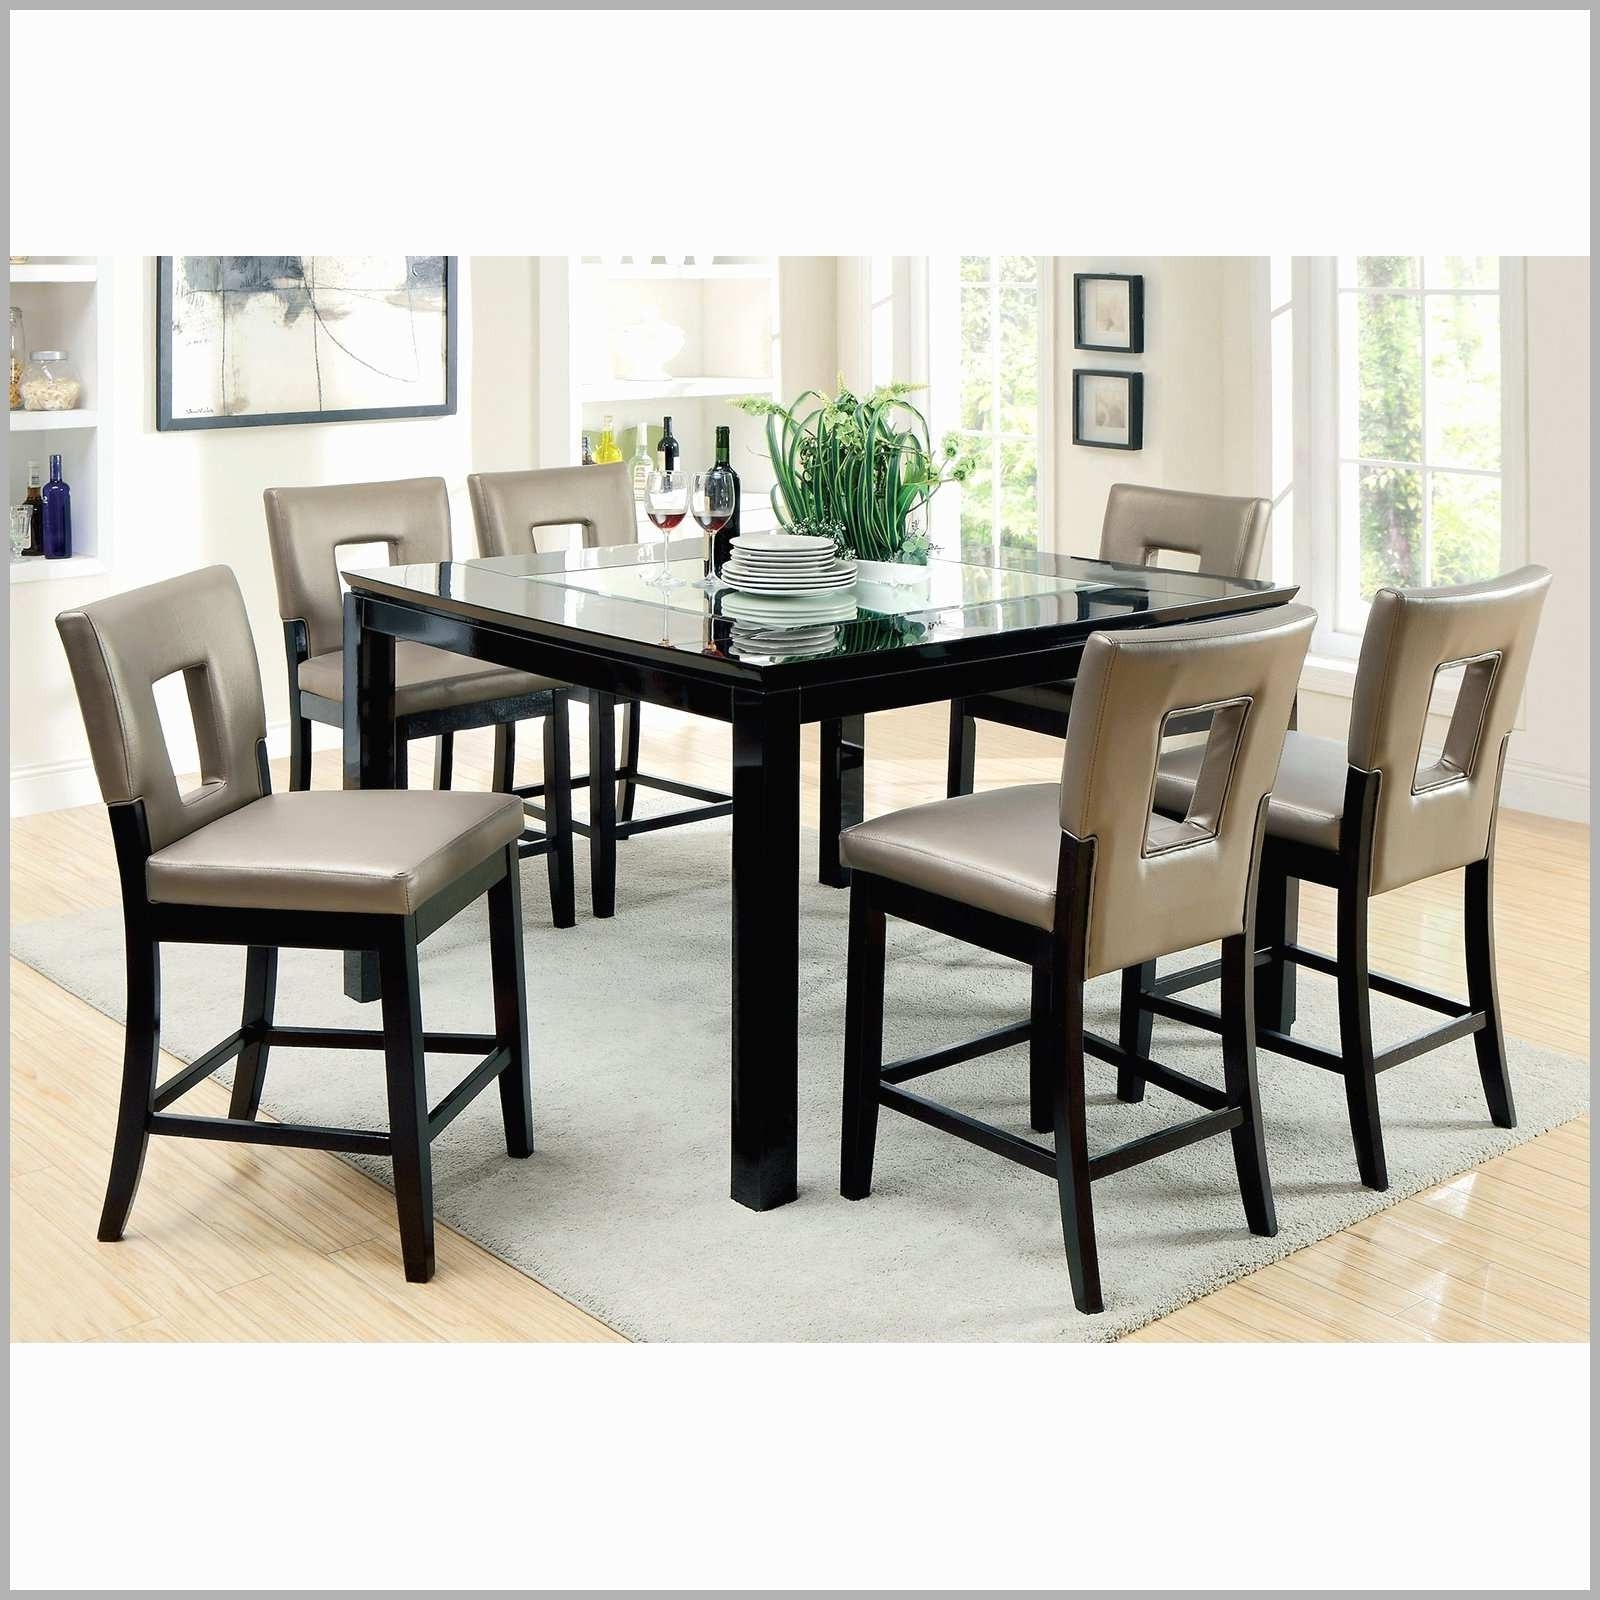 Widely Used 8 Seater Dining Tables And Chairs In White High Gloss Extending Dining Table Luxury 8 Seater Dining Table (View 18 of 25)